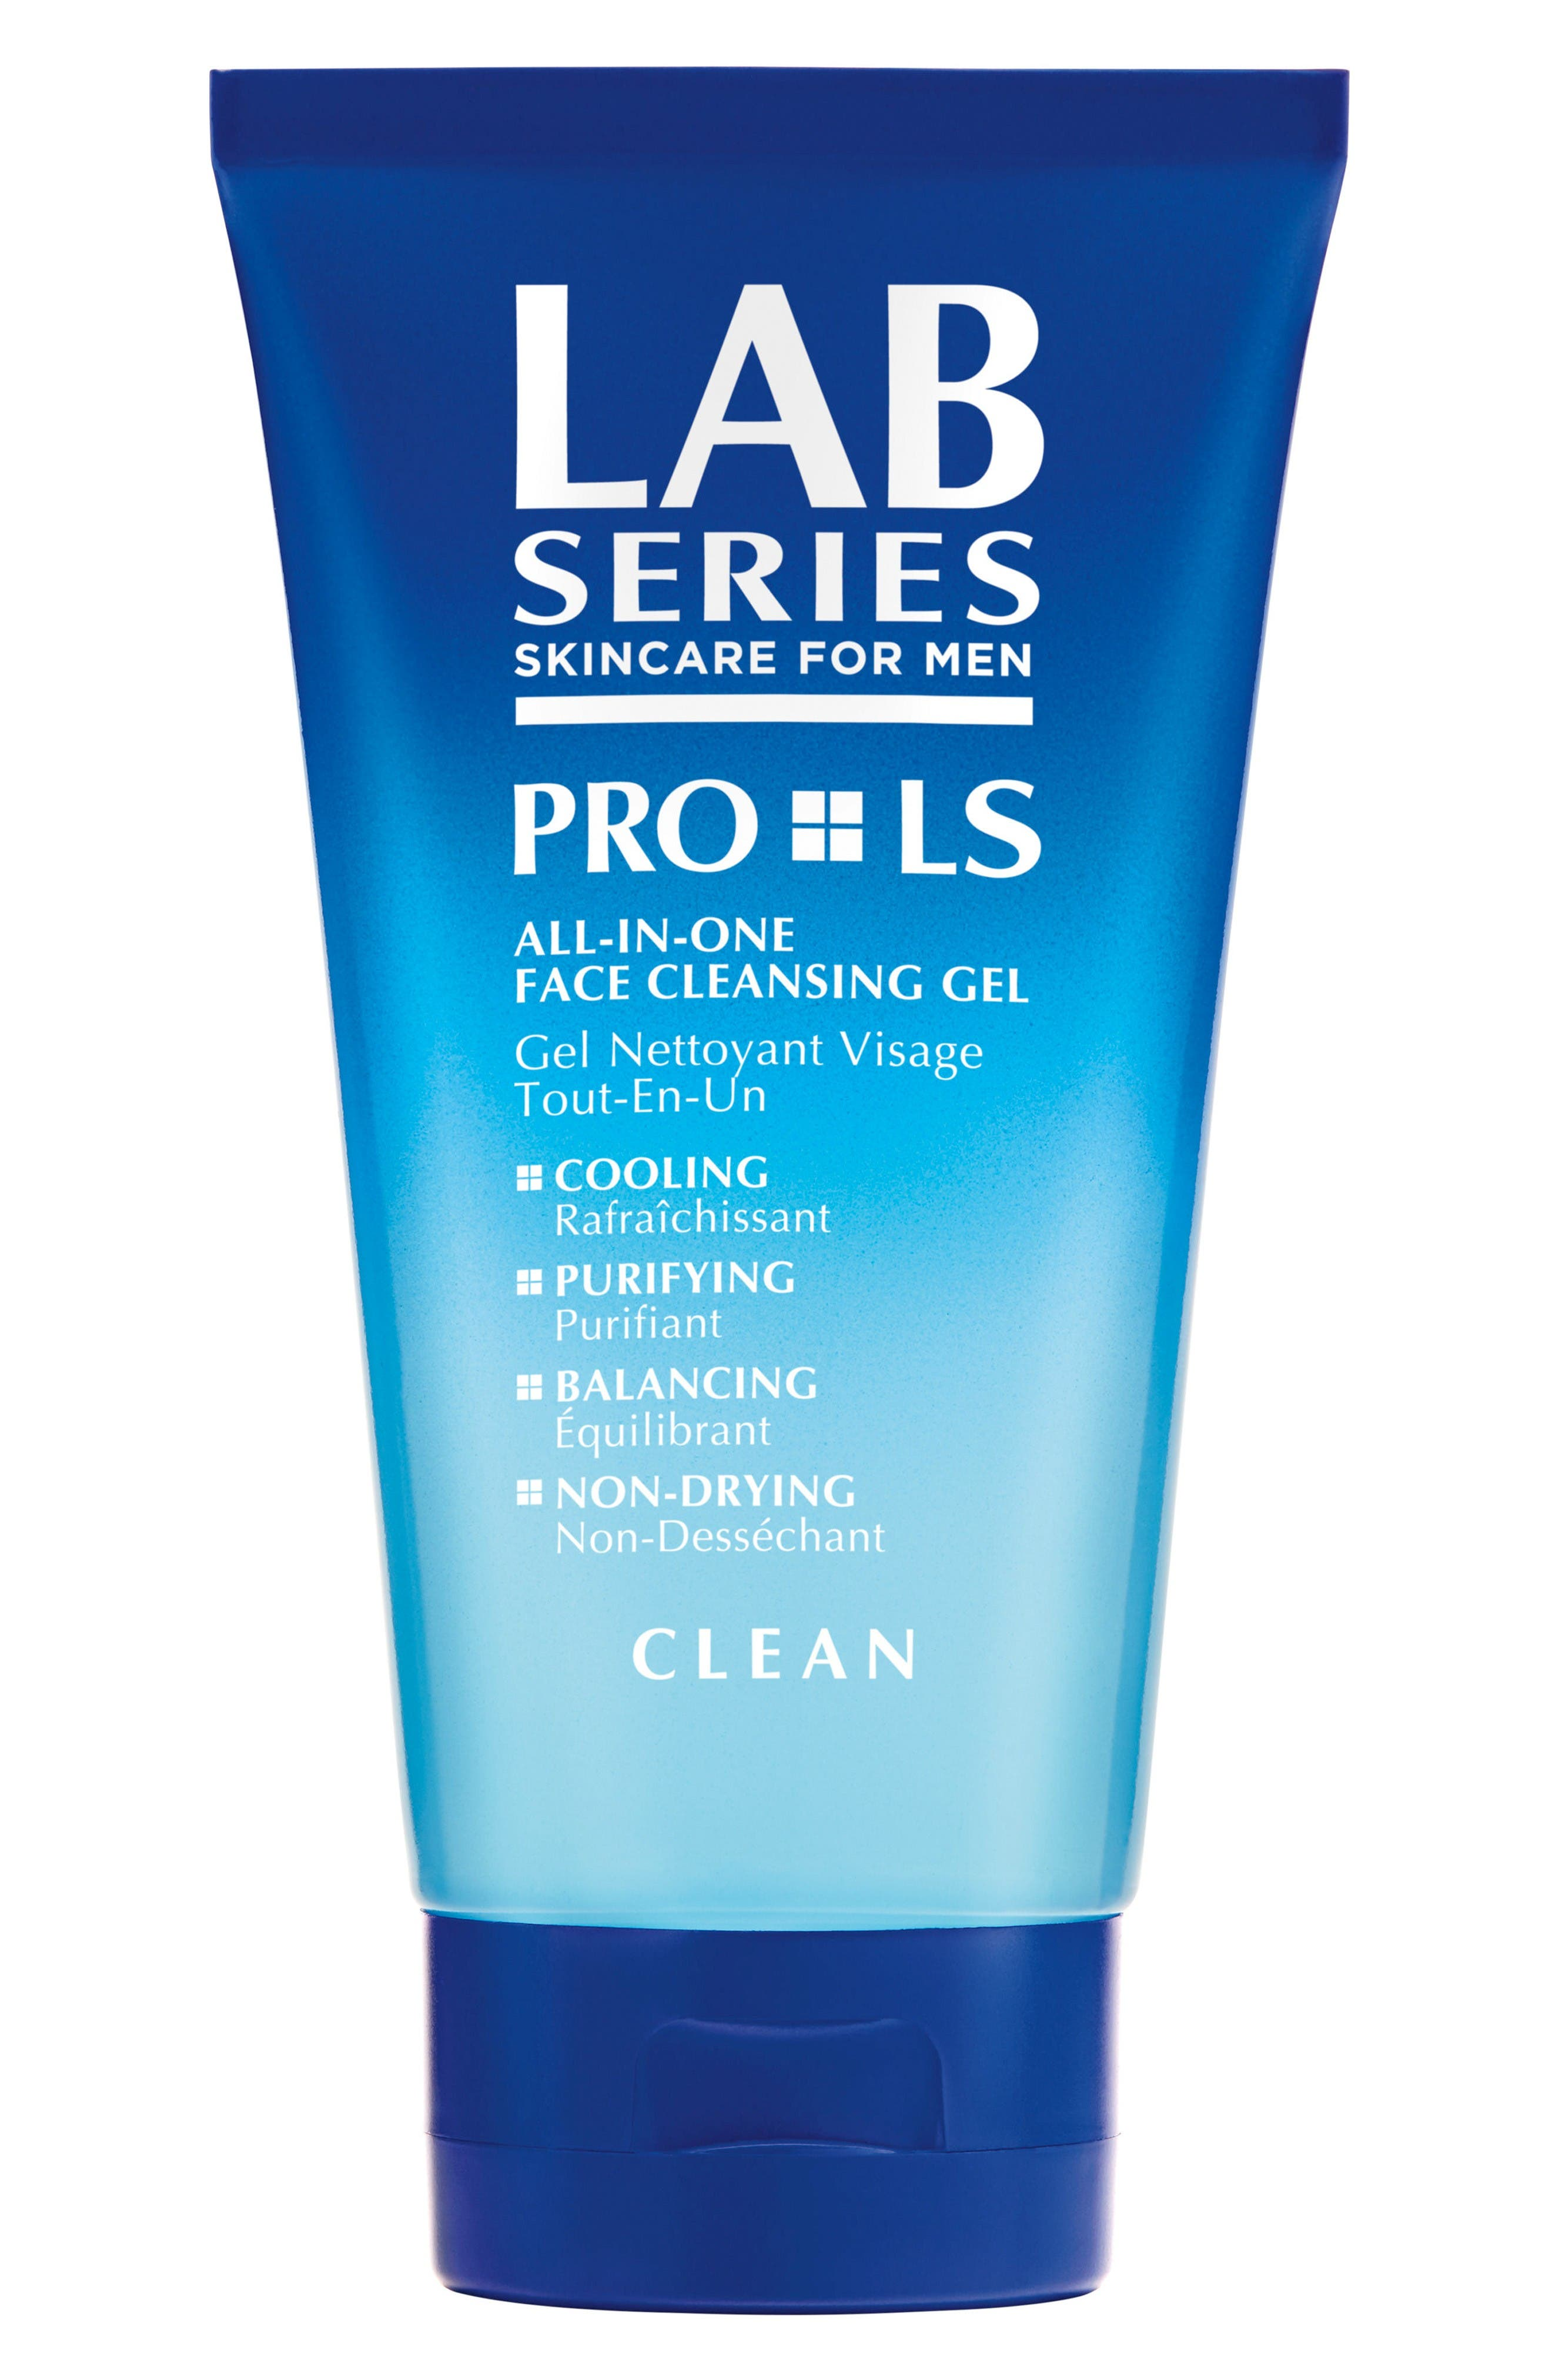 Main Image - Lab Series Skincare for Men PRO LS All-in-One Face Cleansing Gel